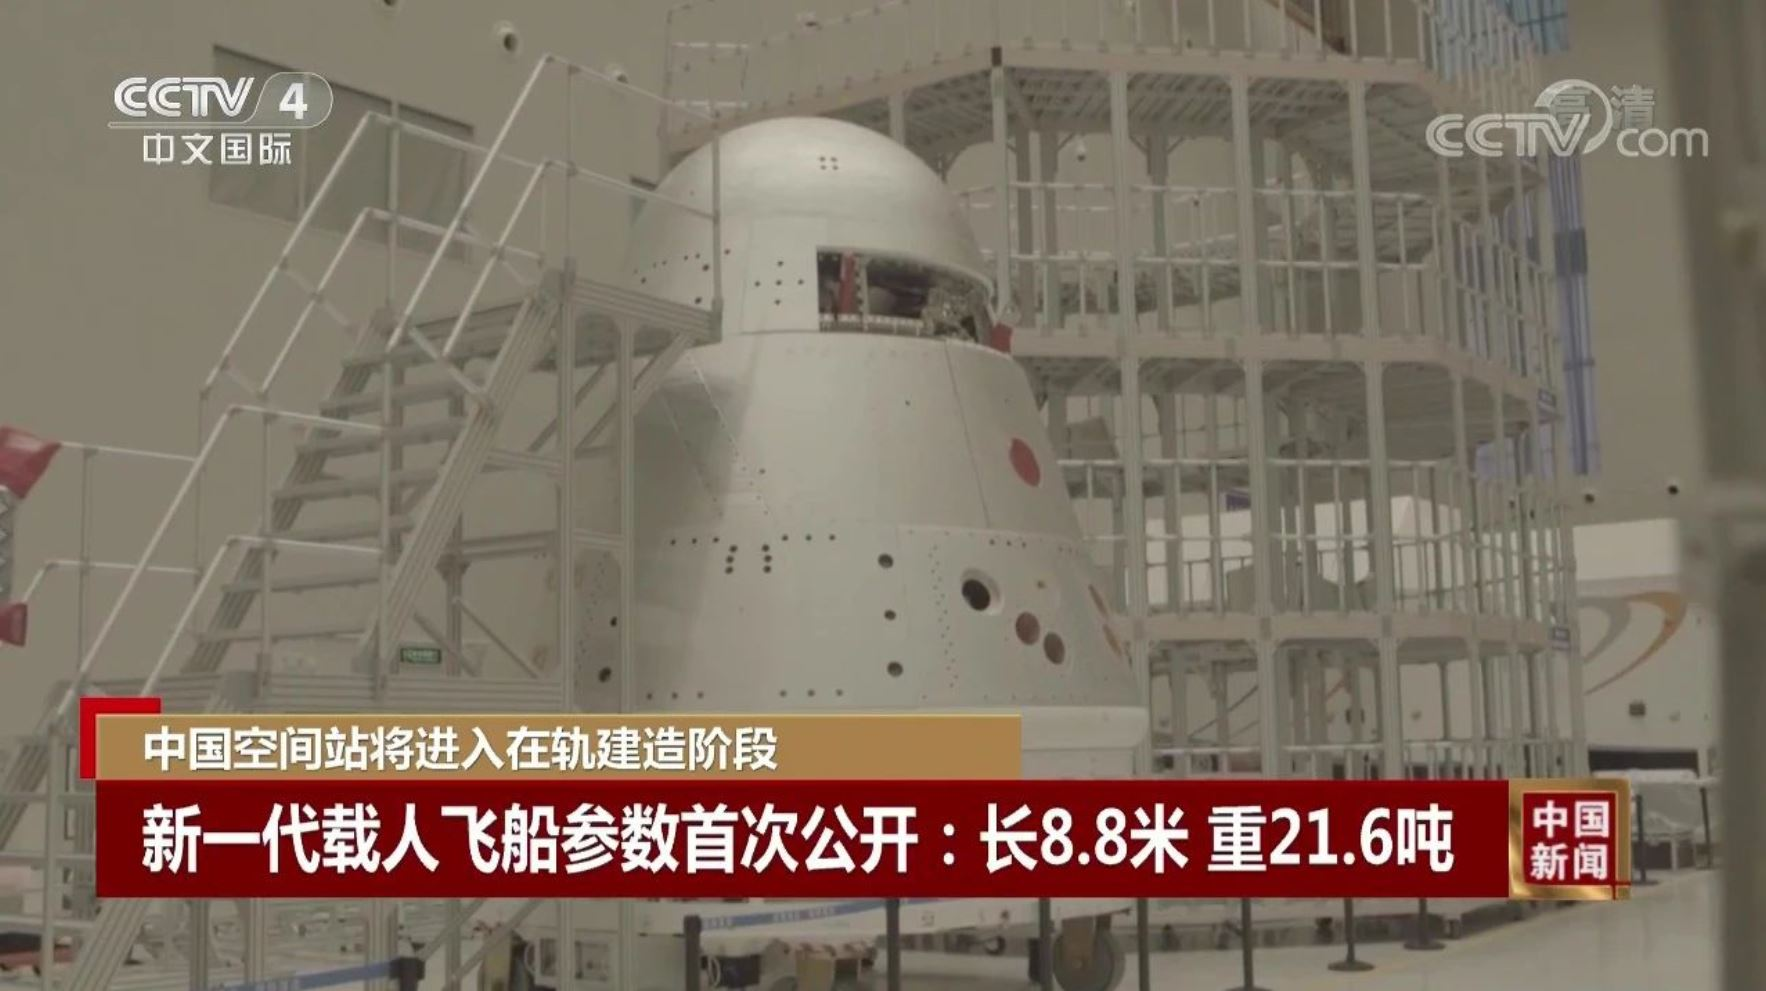 Rocket nears spaceport for Chinese space station test launch